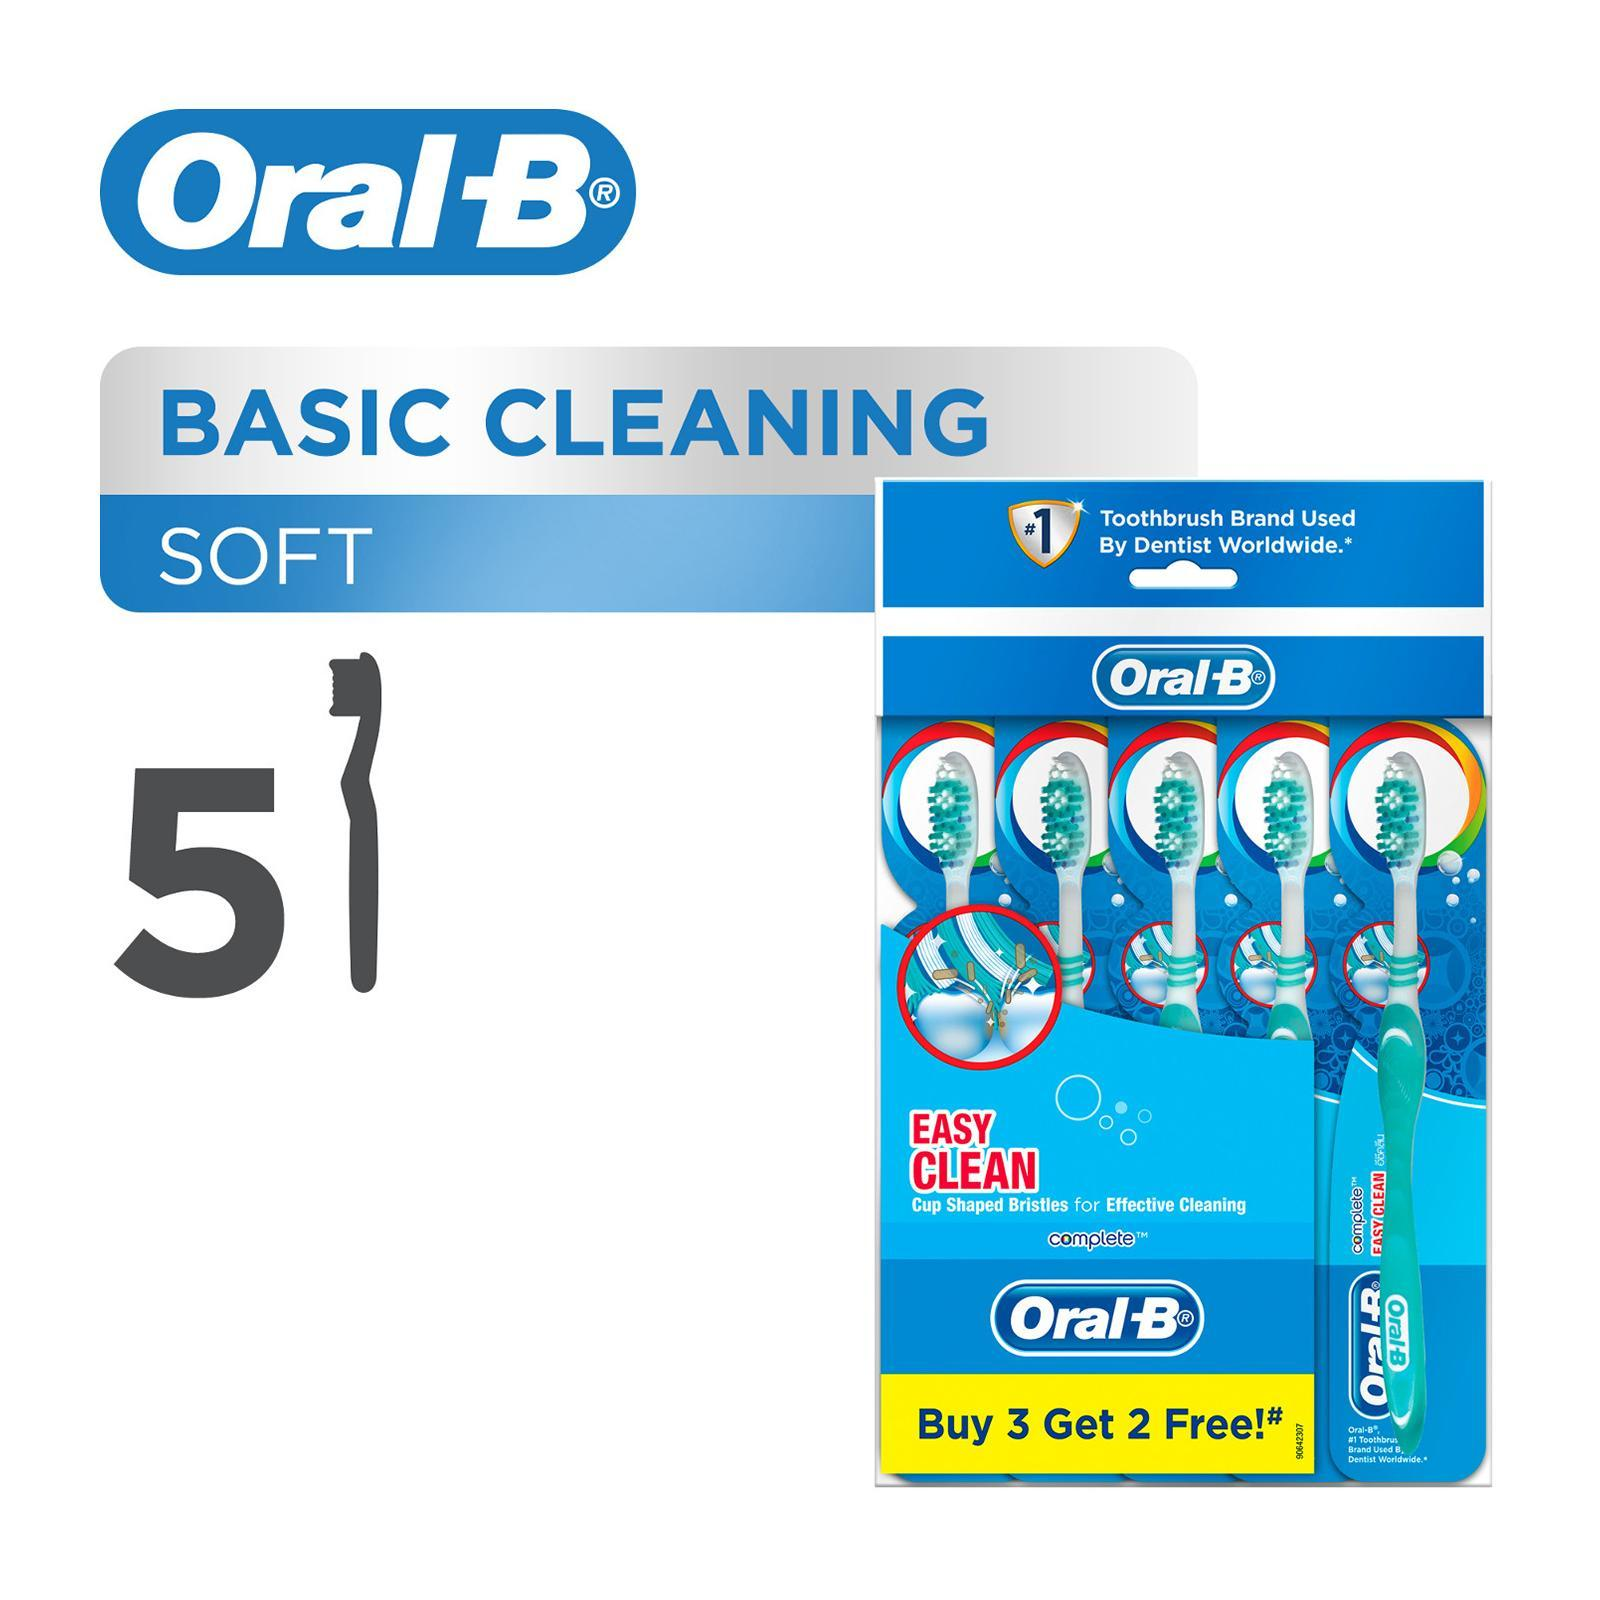 ORAL B complete easy clean medium manual toothbrush 5 count polybag